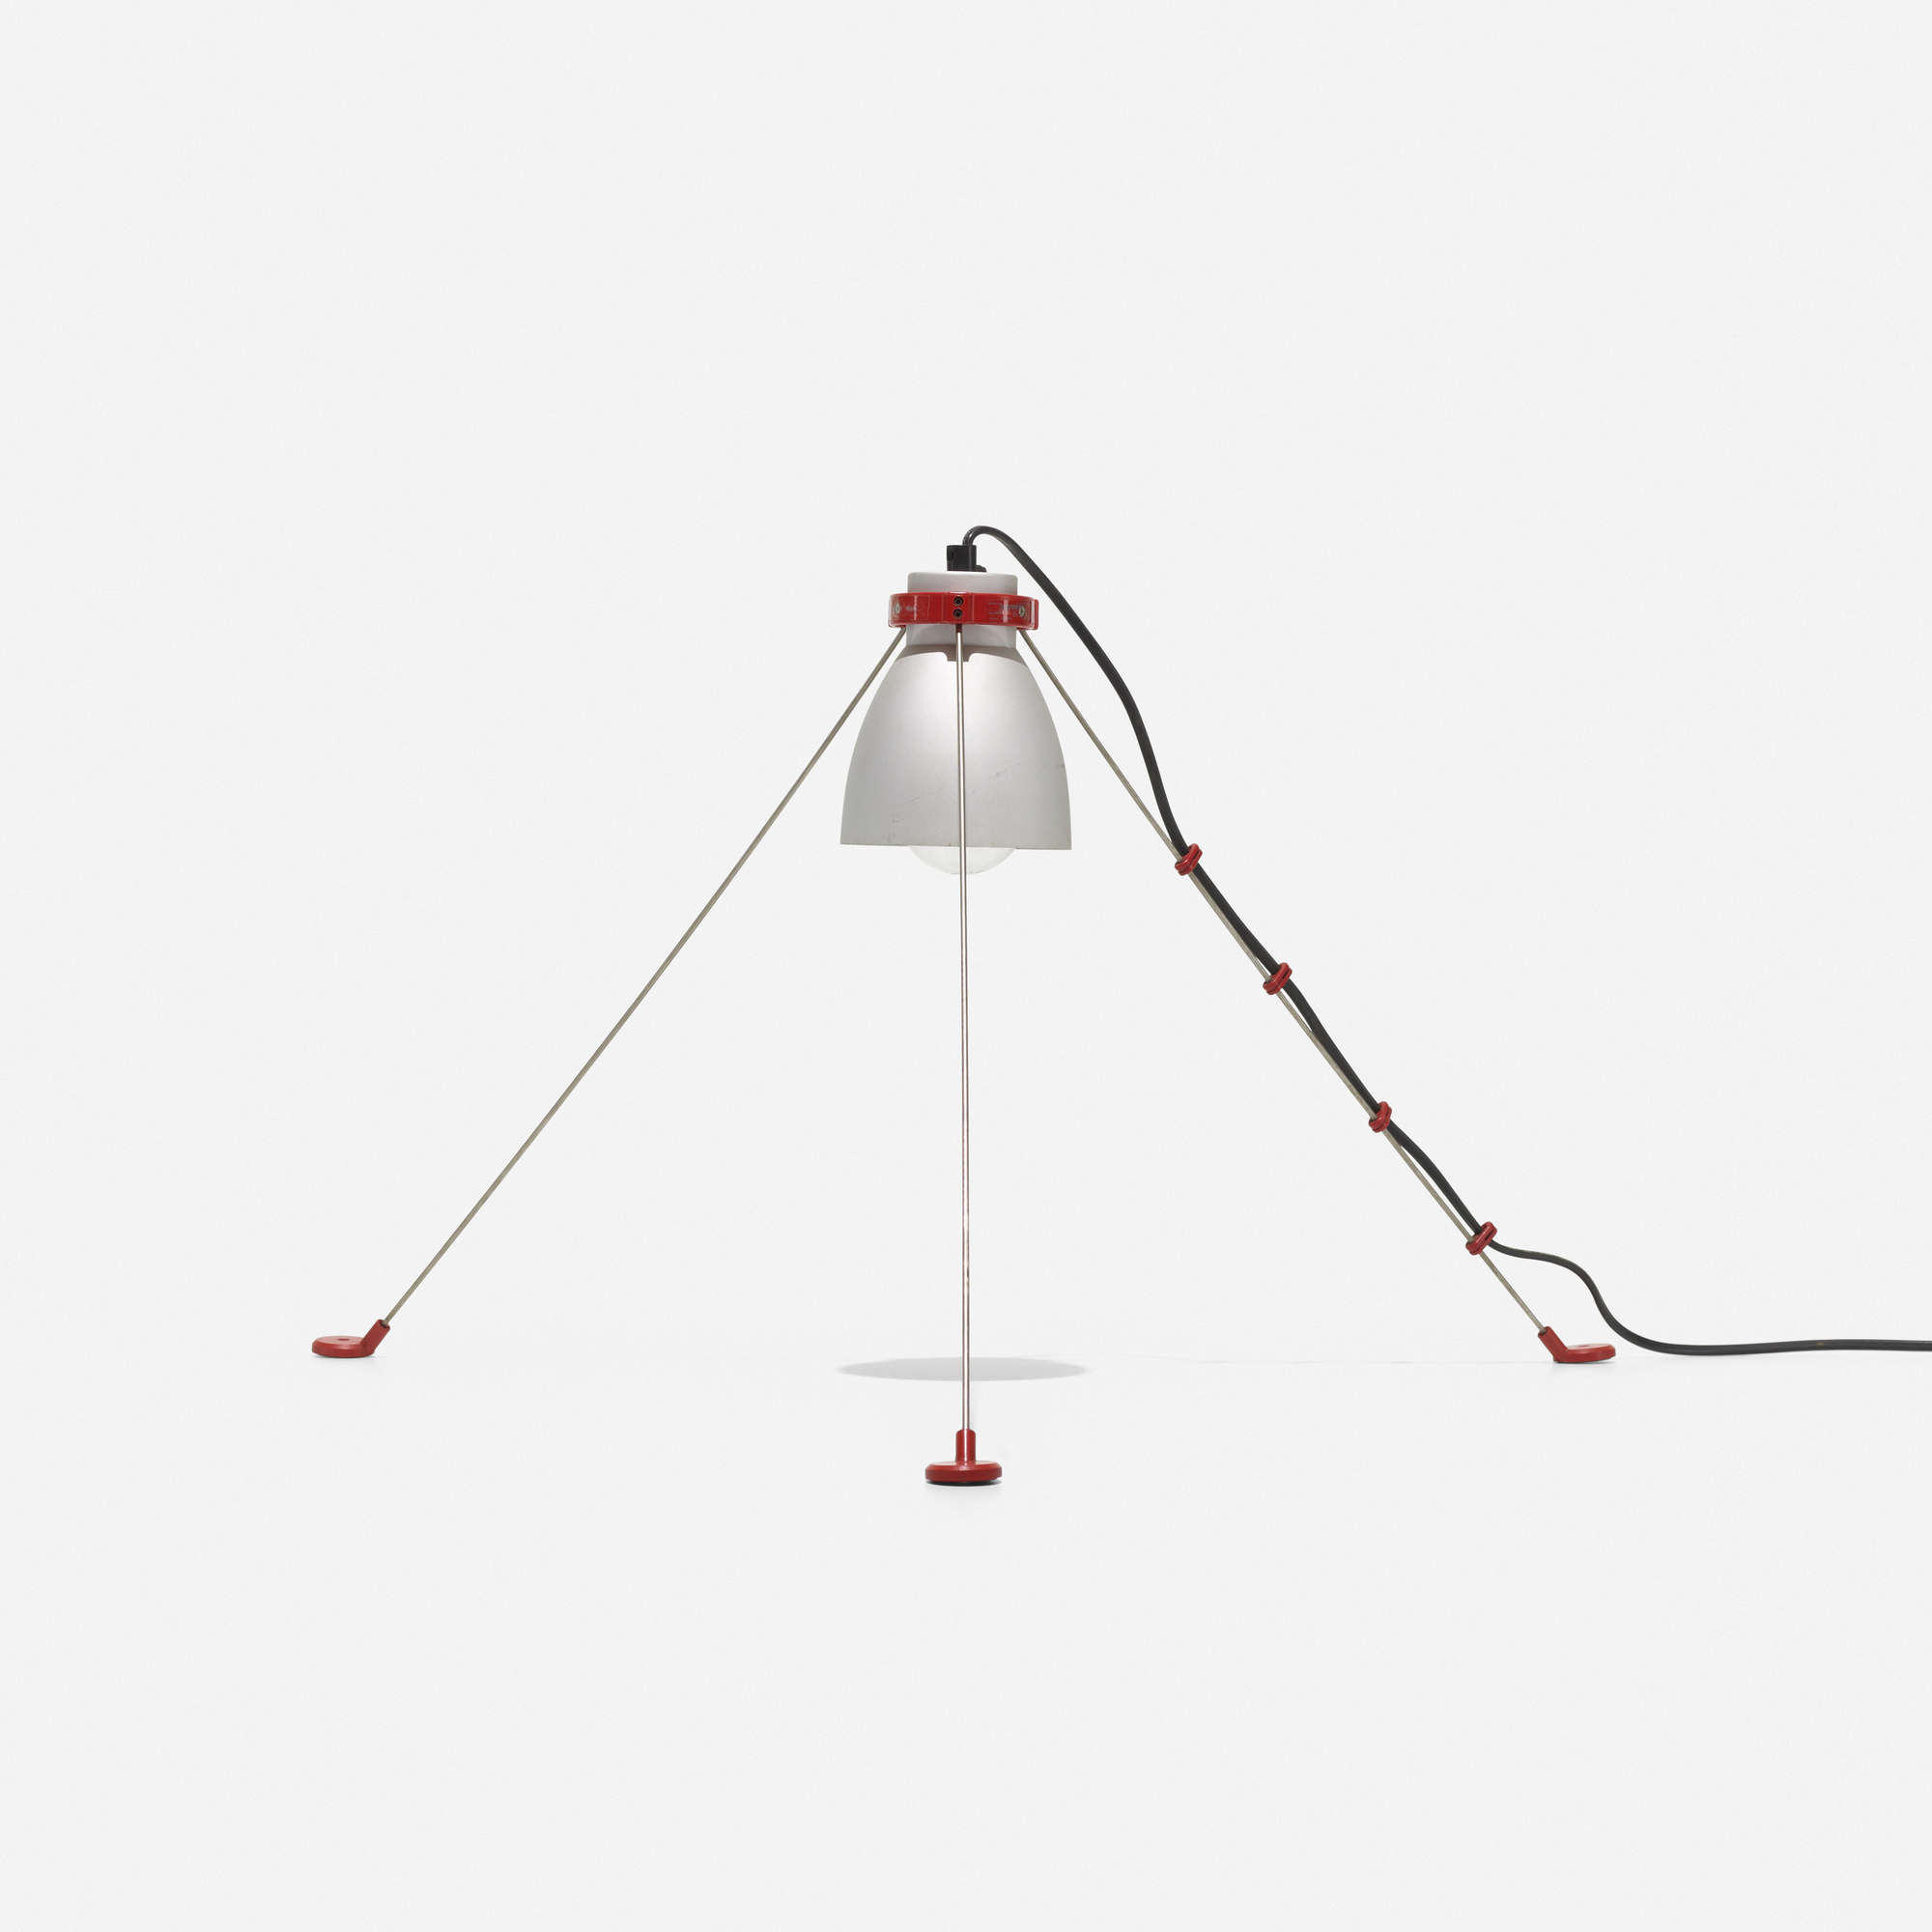 311: G.H. Tew / Grifo table lamp (1 of 1)